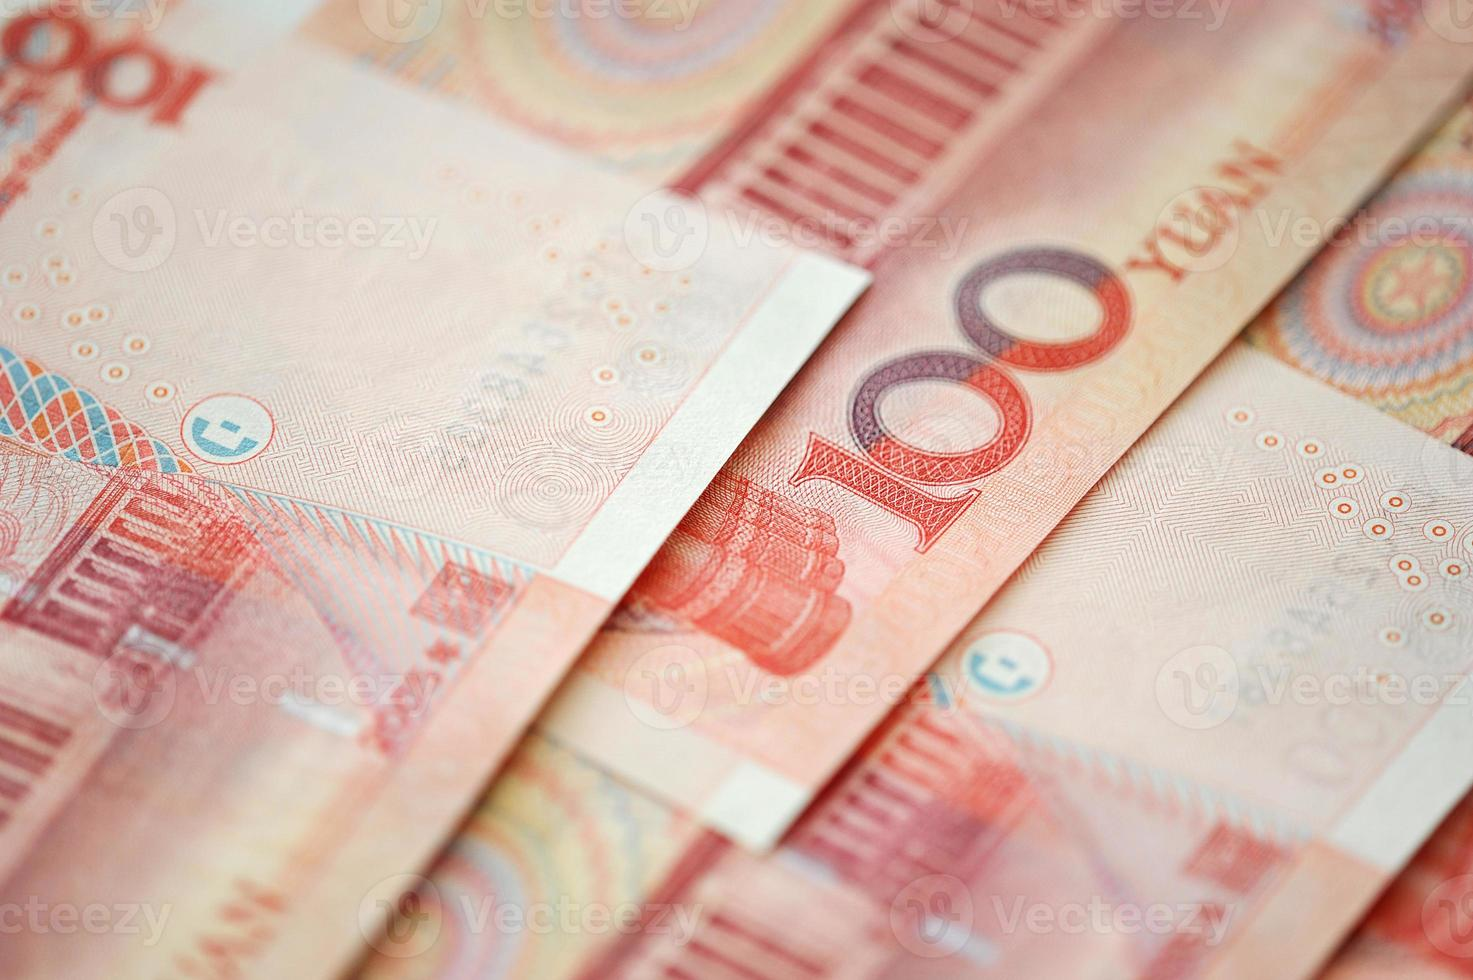 Yuan notes from China's currency. Chinese banknotes photo